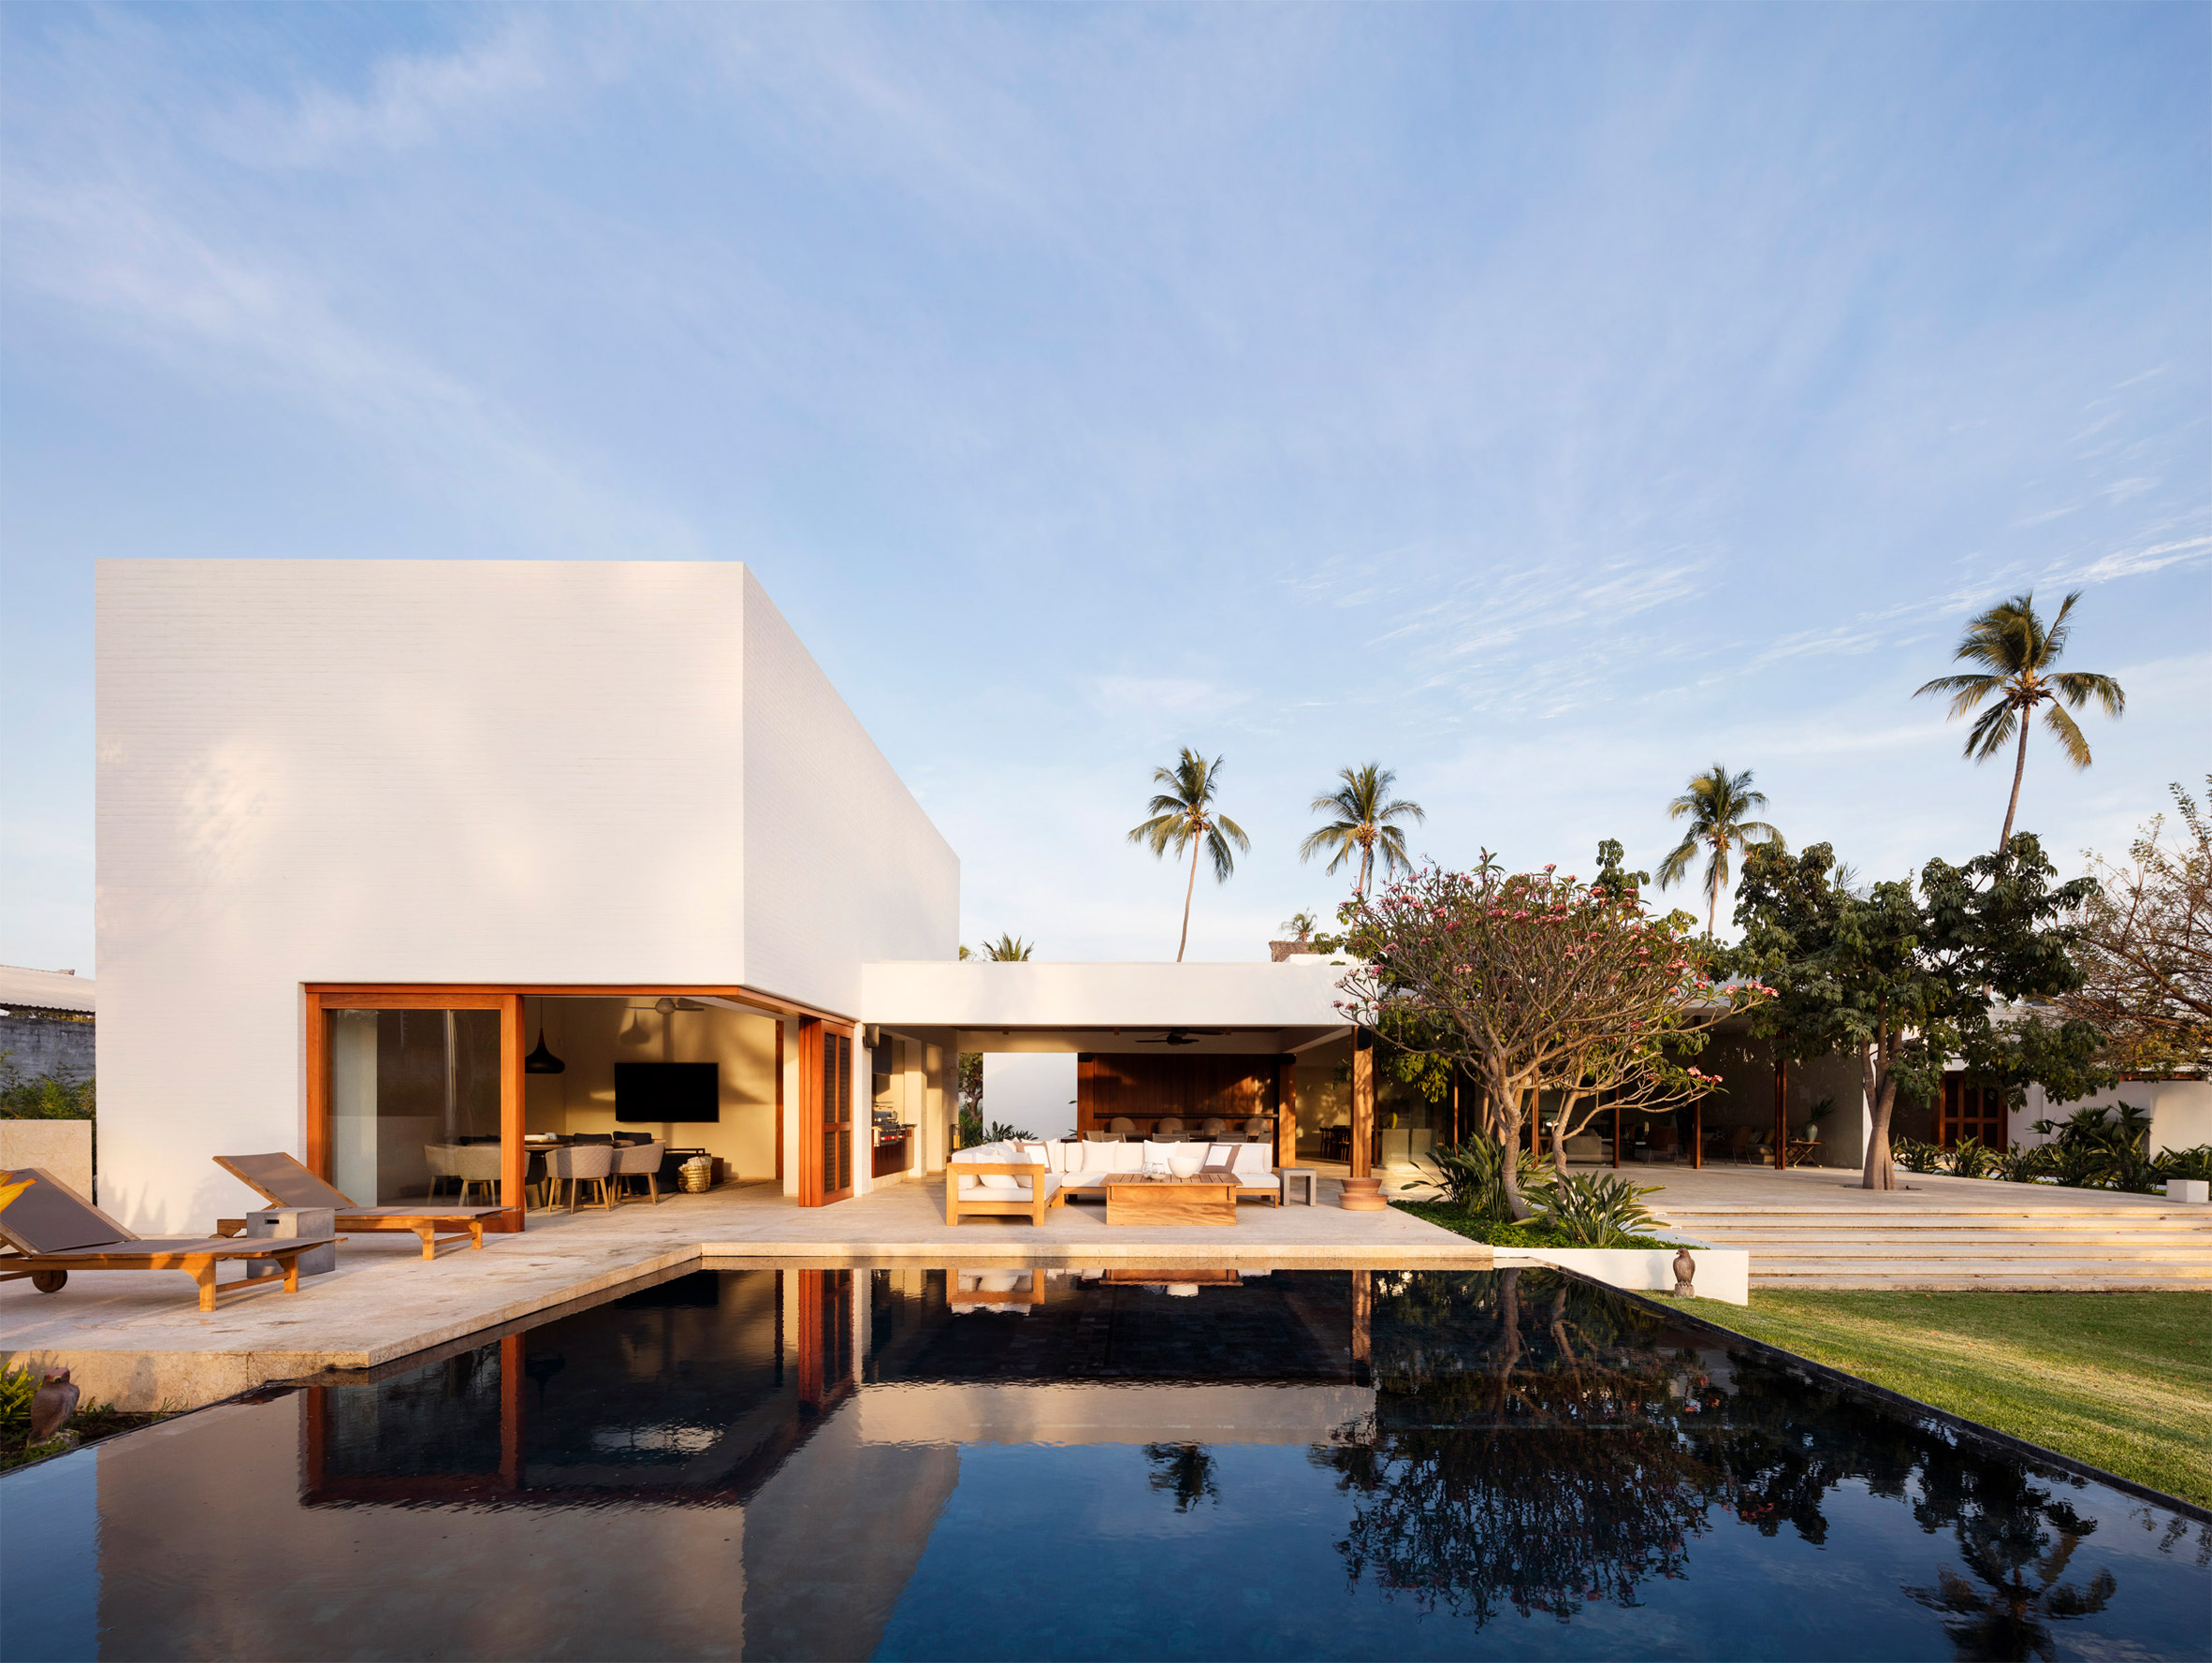 Tropical modern house has a courtyard filled with palm trees